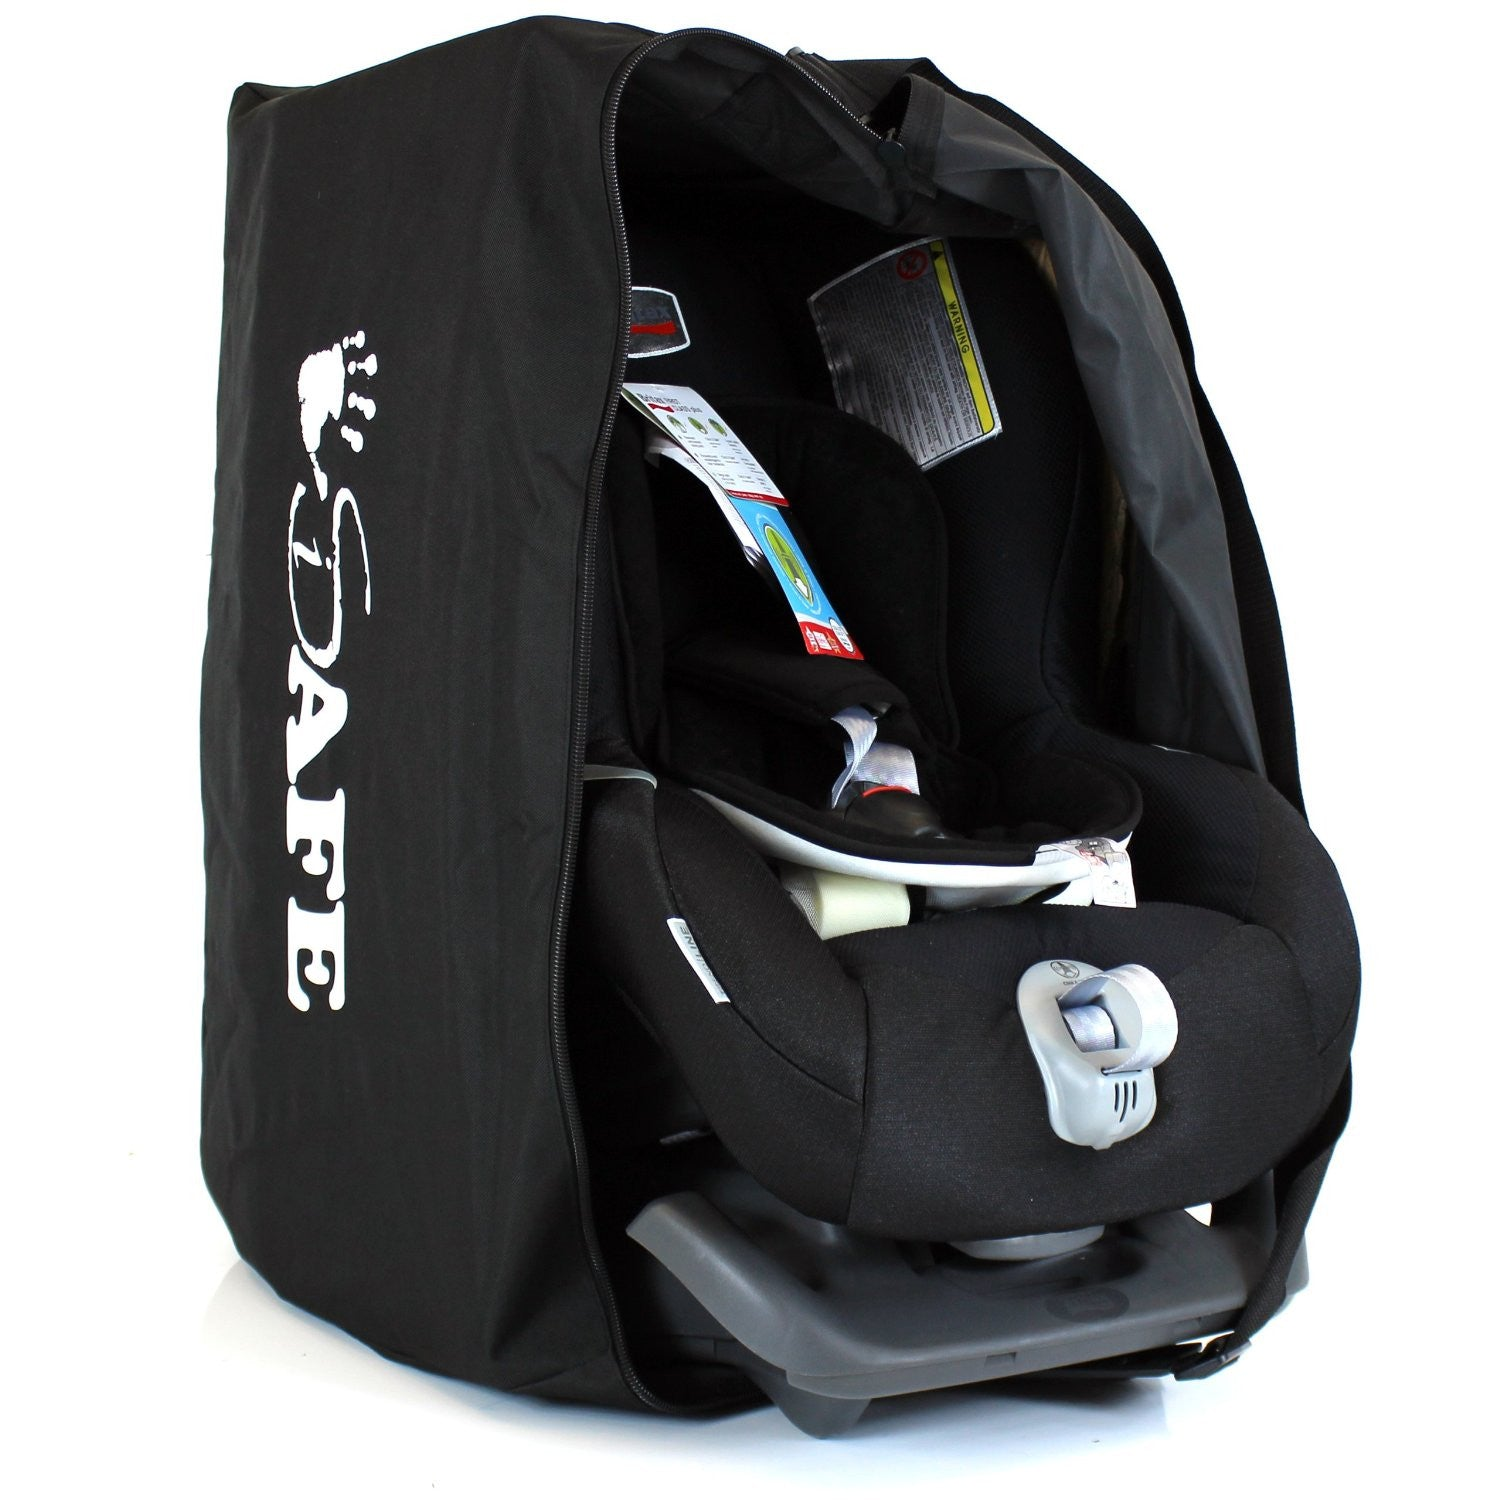 ISafe Universal Carseat Travel Storage Bag For Maxi Cosi Priori SPS Car Seat